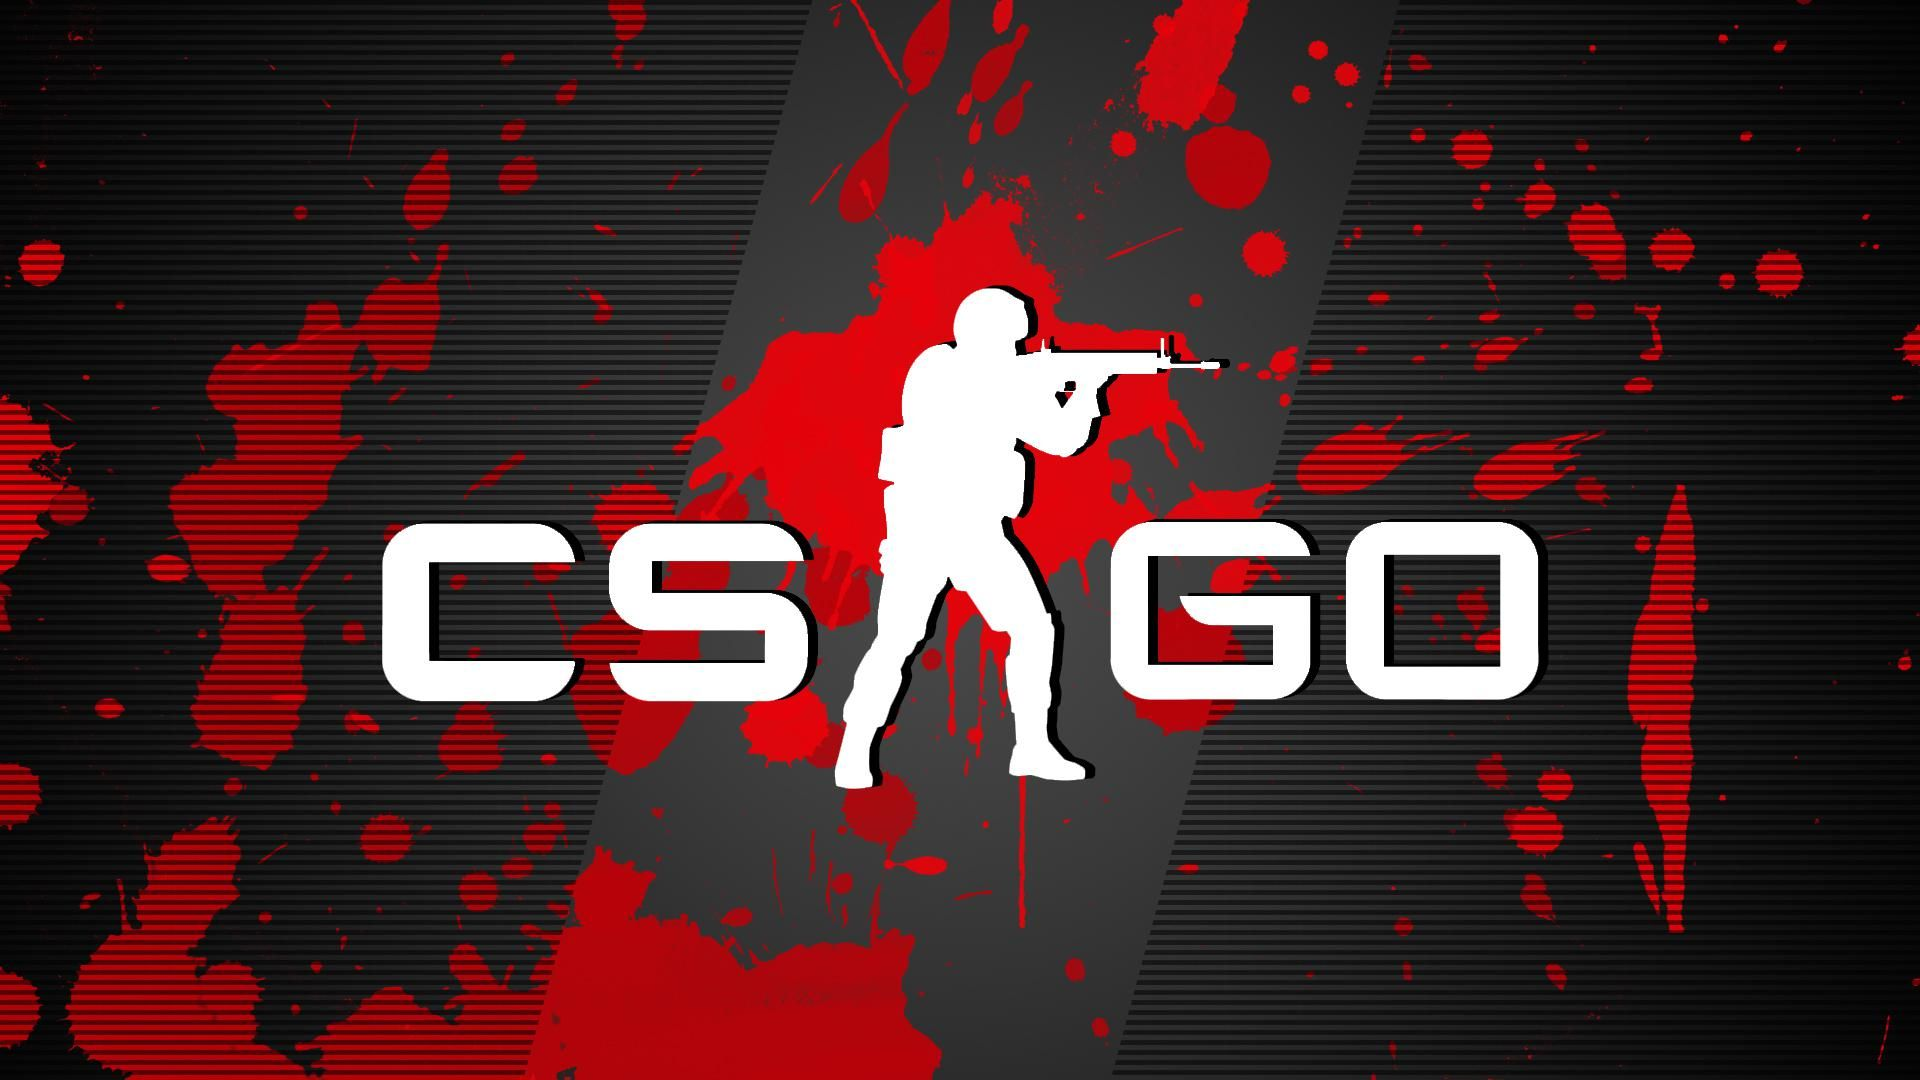 1280x1024 counter-strike global offensive wallpapers hd, desktop